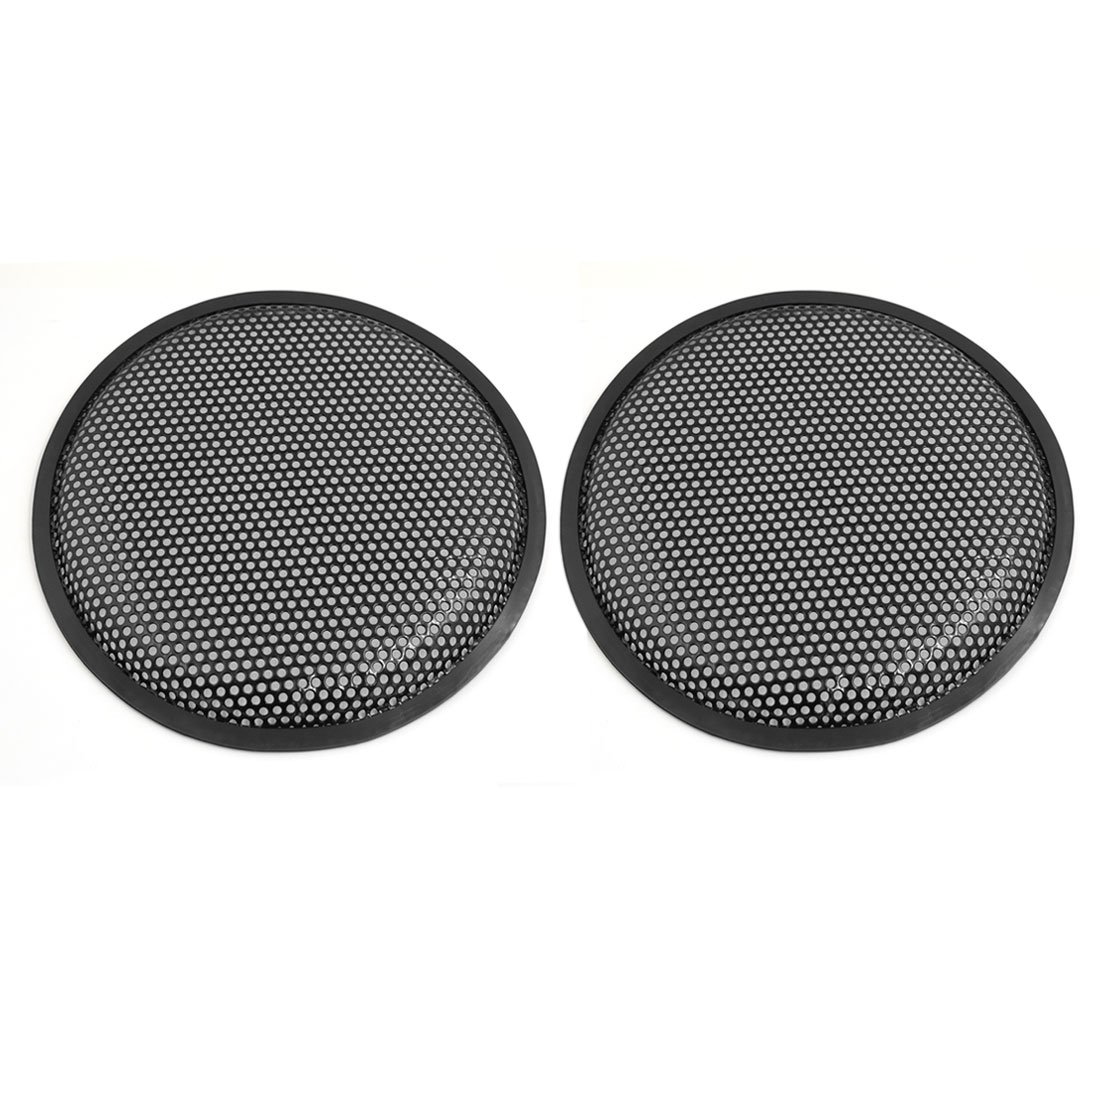 Uxcell a16010800ux0163 10 Inch Universal Car Audio Subwoofer Grill Cover Guard Protector 2pcs, 2 Pack